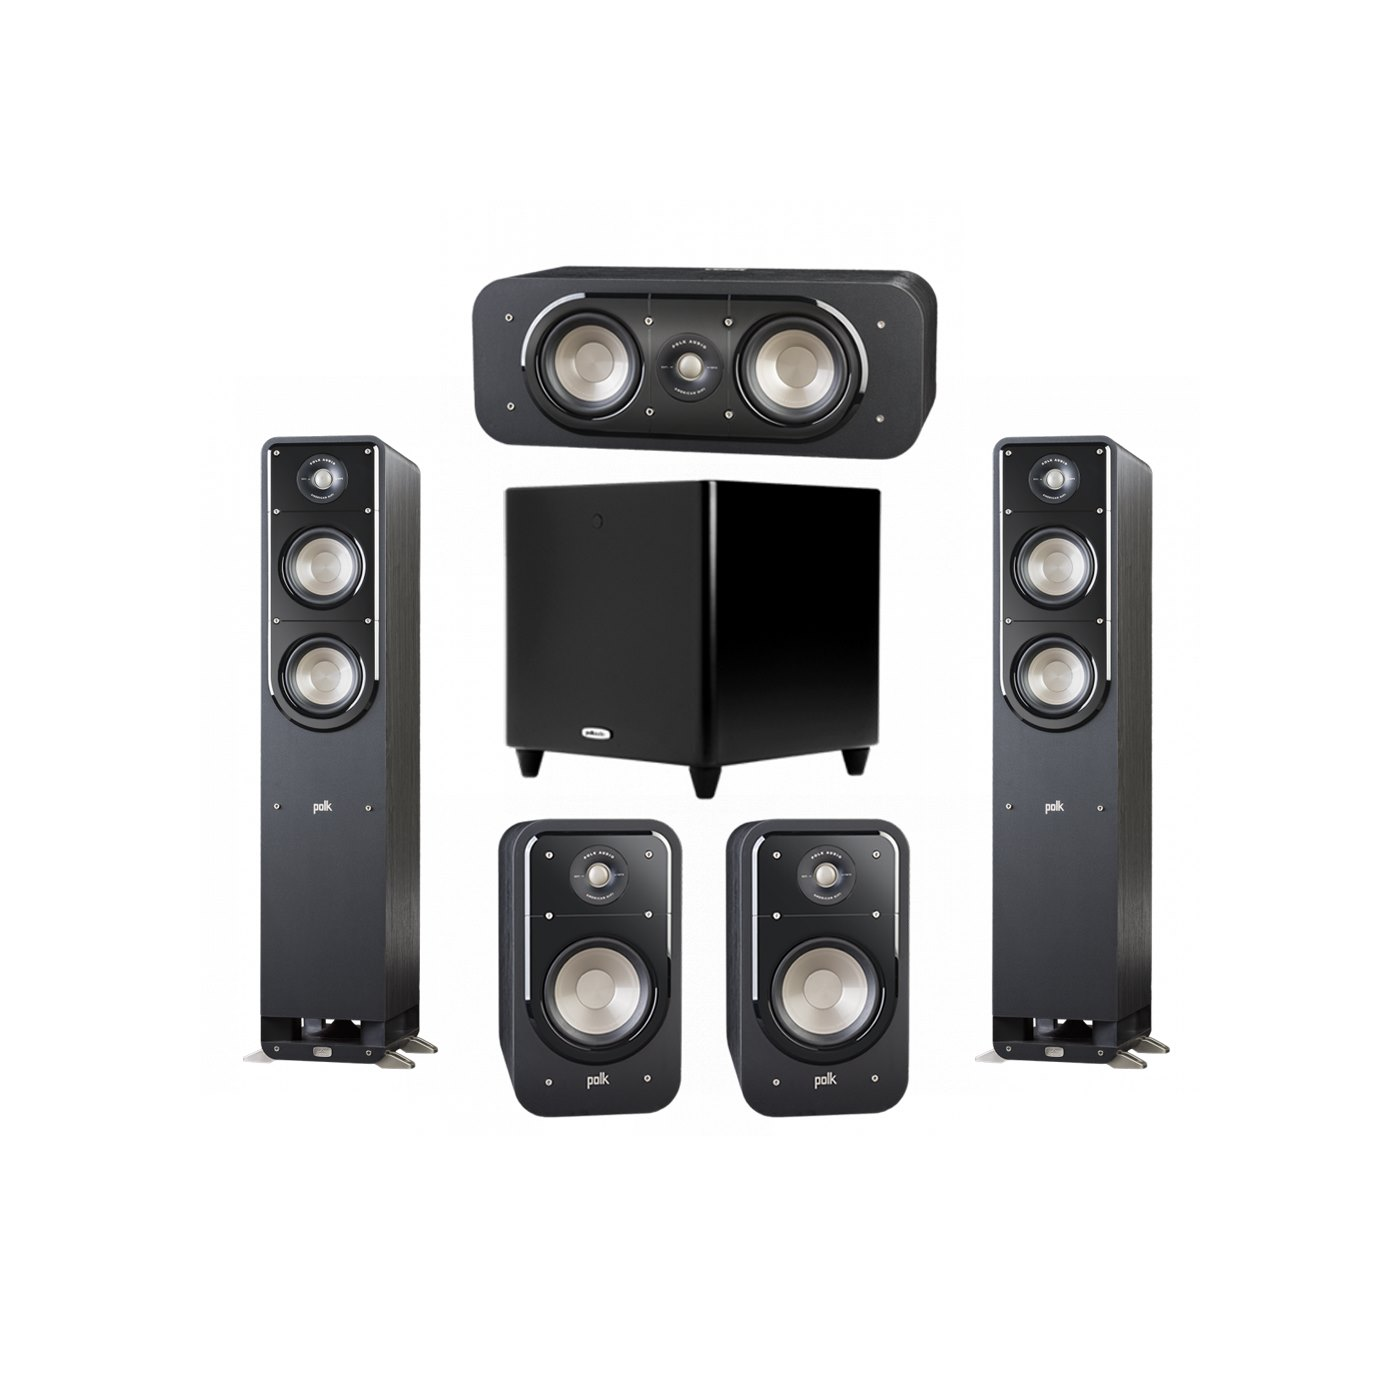 Polk Audio Signature 5.1 System with 2 S50 Tower Speaker, 1 Polk S30 Center Speaker, 2 Polk S20 Bookshelf Speaker, 1 Polk DSW PRO 550 wi Subwoofer